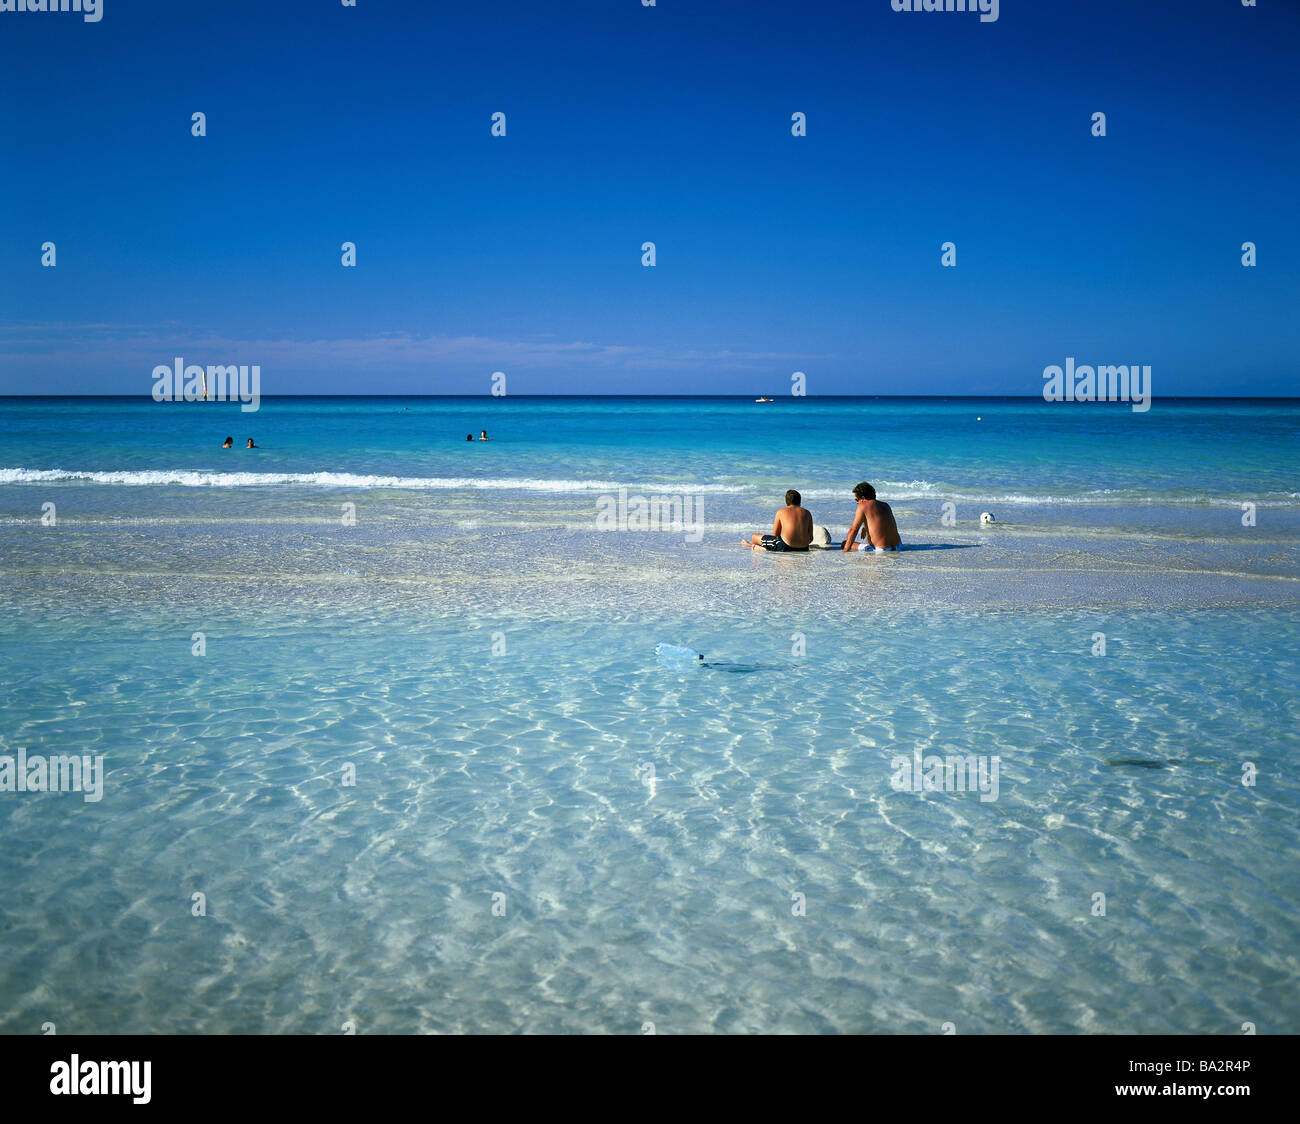 Caribbean swimmers models no release sea tourists water cooling bath-fun relaxen water refreshment sits enjoys leisure - Stock Image